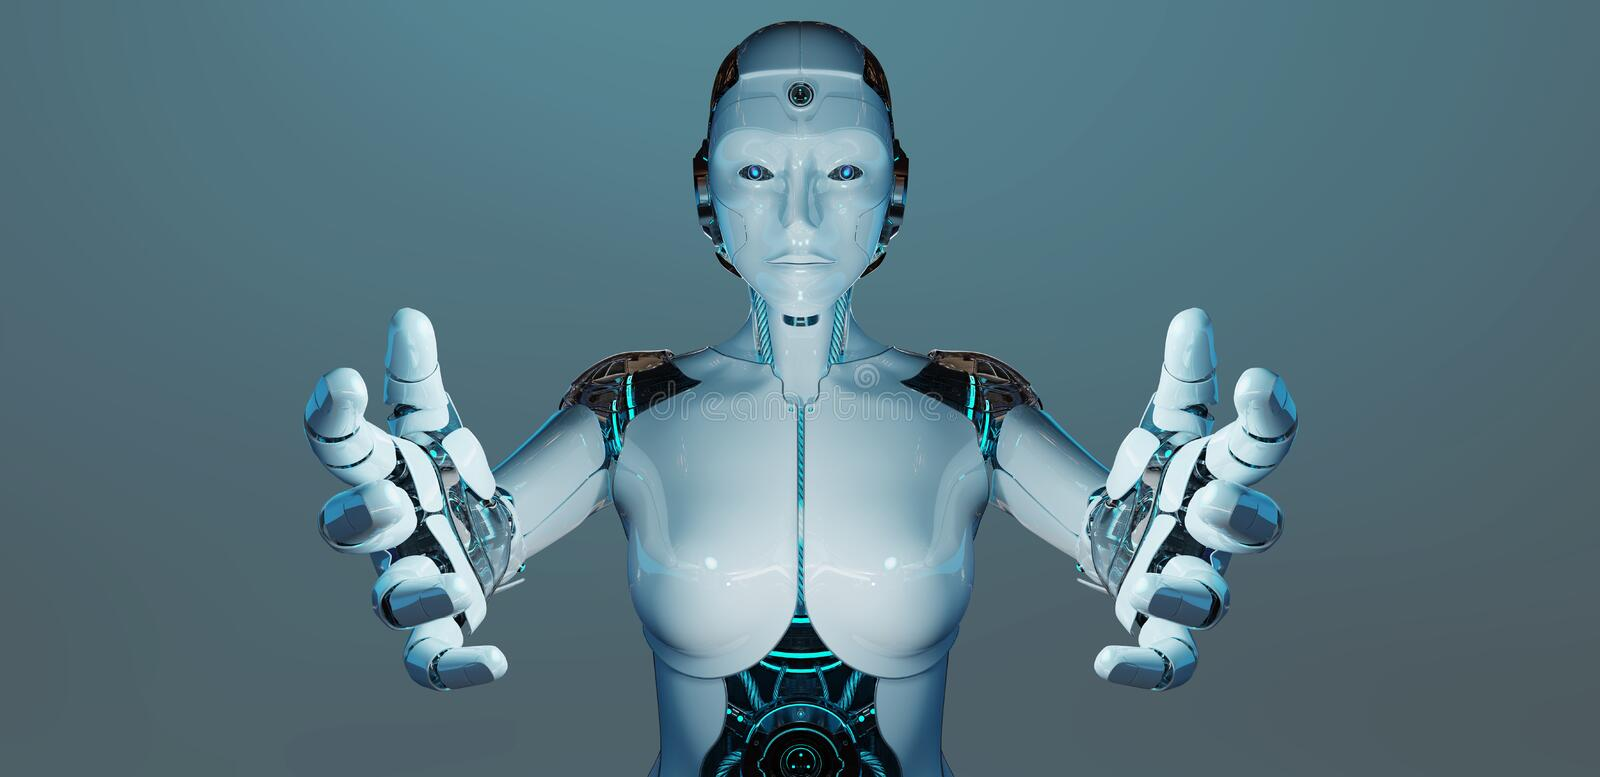 White woman cyborg opening her two hands 3D rendering stock illustration